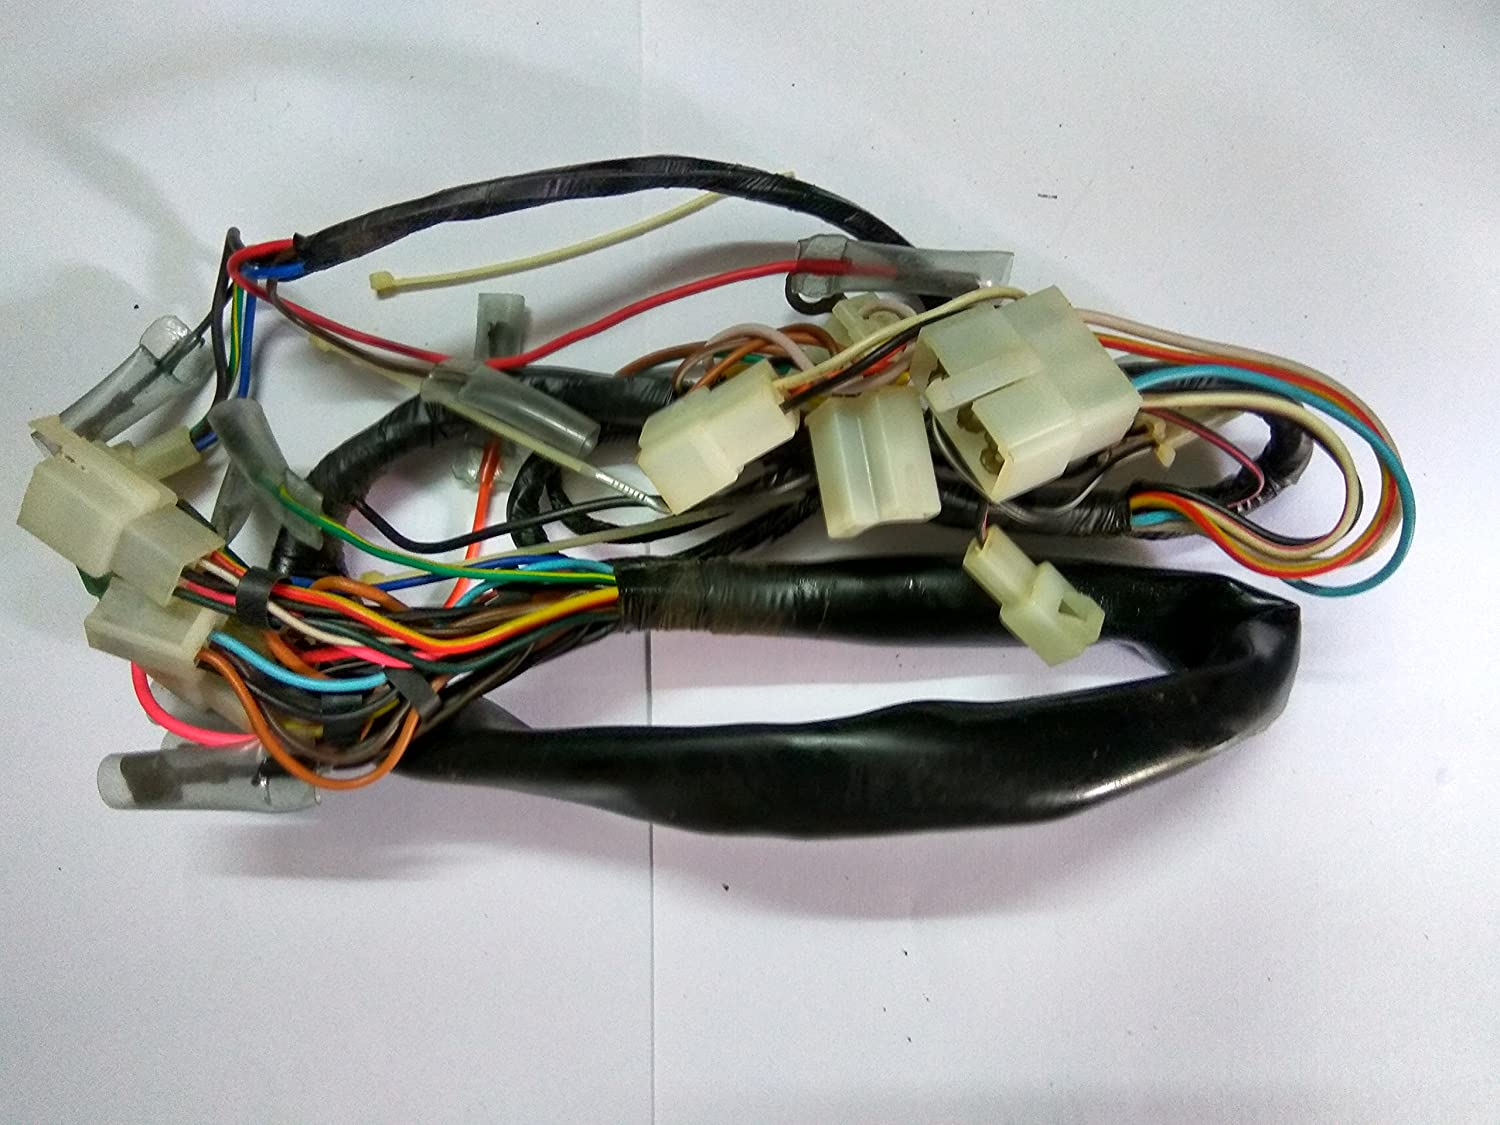 satpro Wiring Harness for Yamaha Rx-100 (SP/WHR/330) on